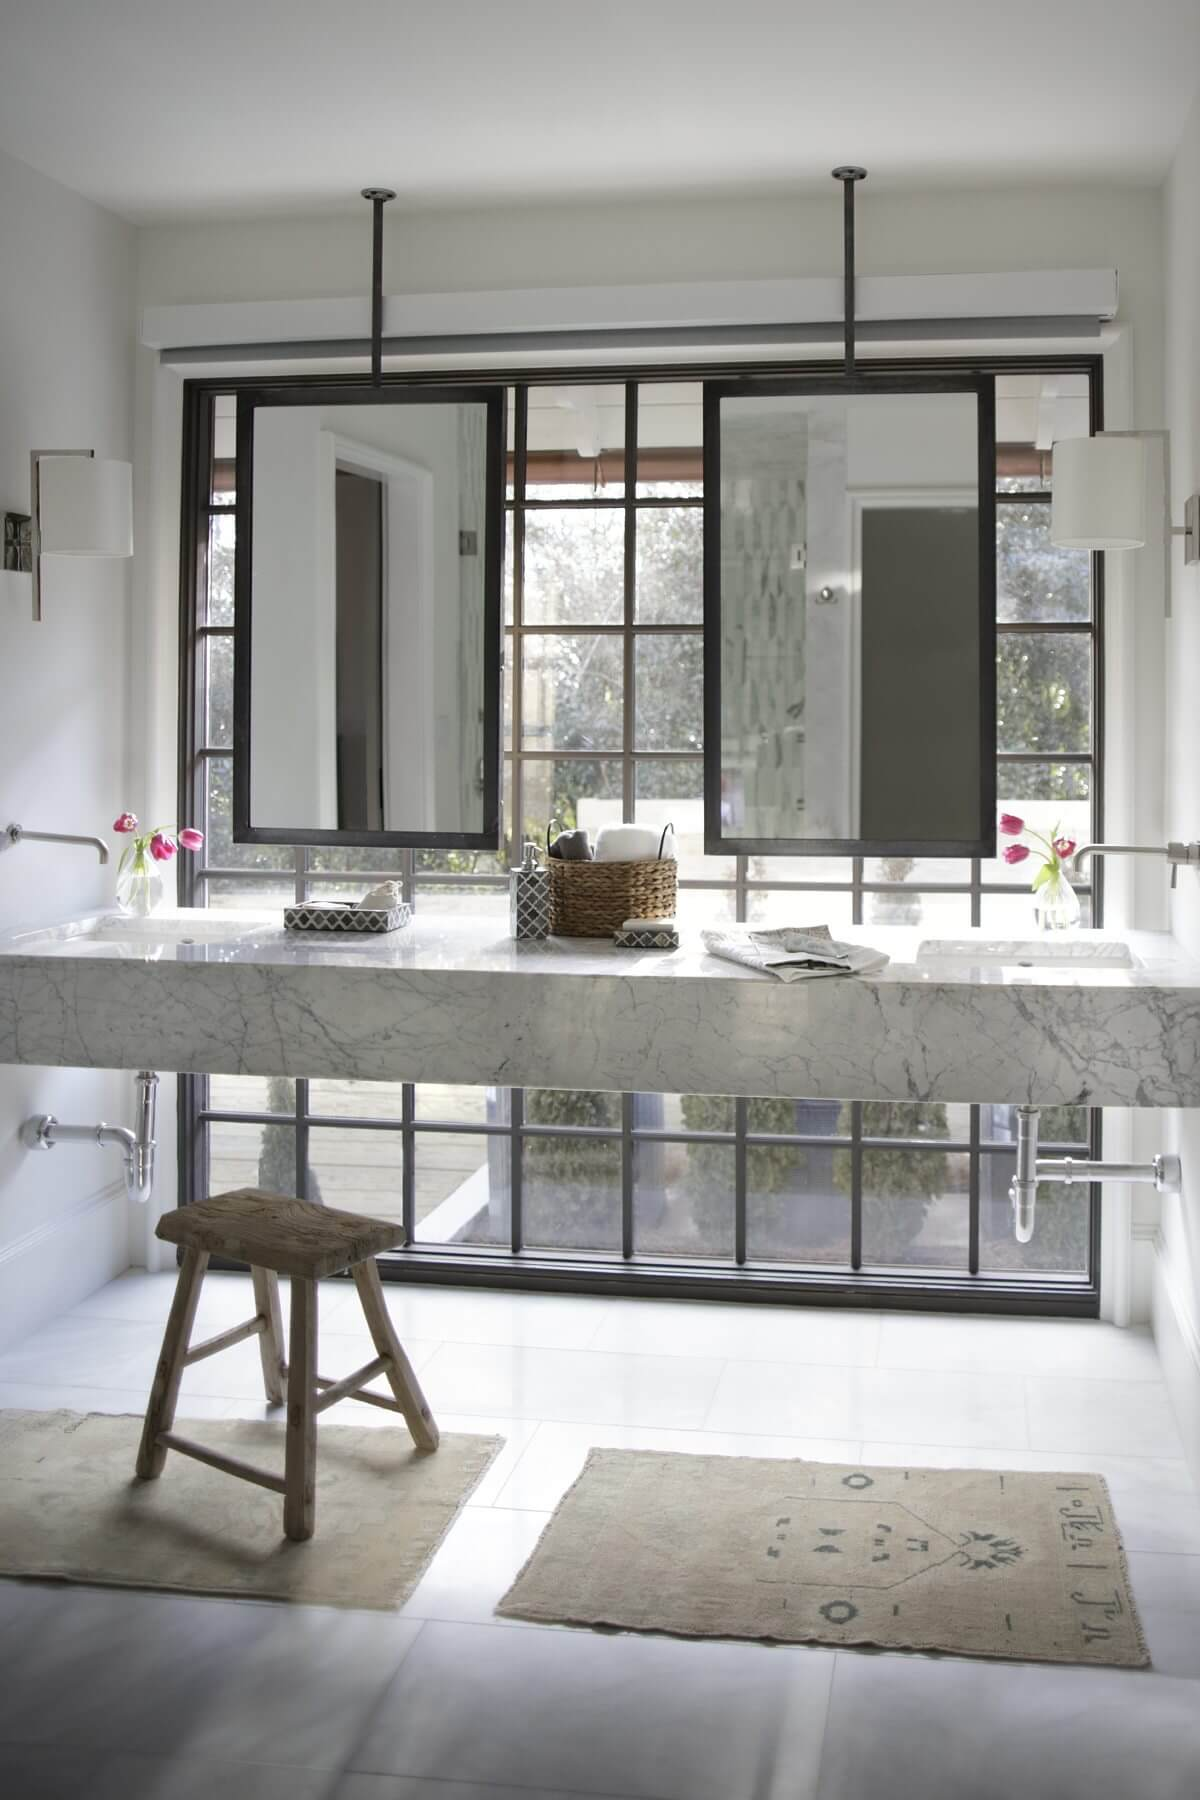 This gorgeous his-and-hers bathroom features natural light, marble, chic hardware and suspended mirrors.